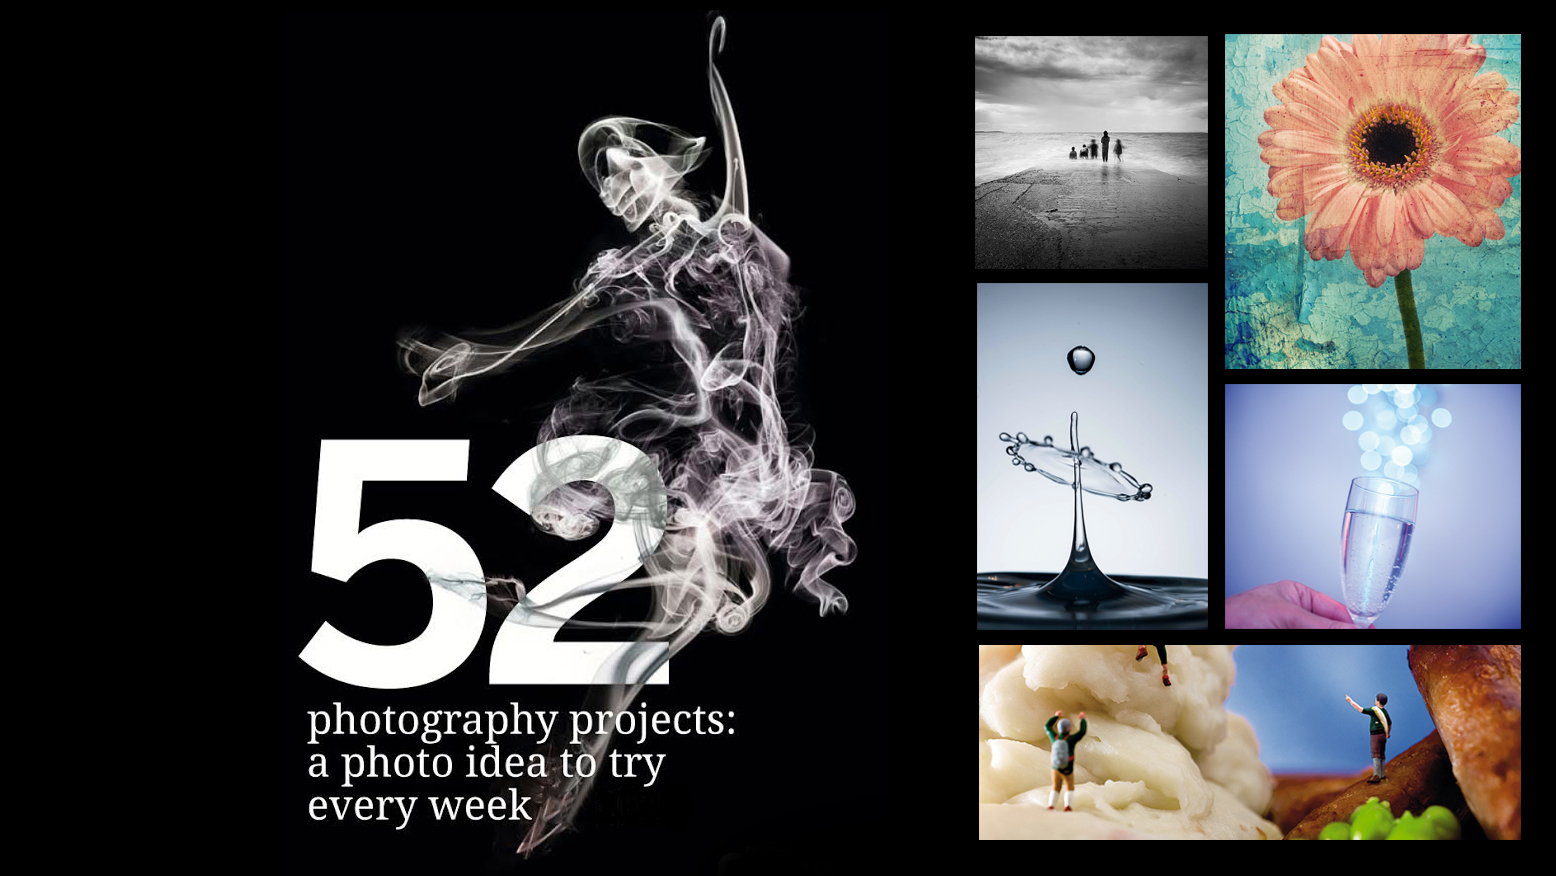 52 photography projects: a great technique to try every week of the year |  TechRadar